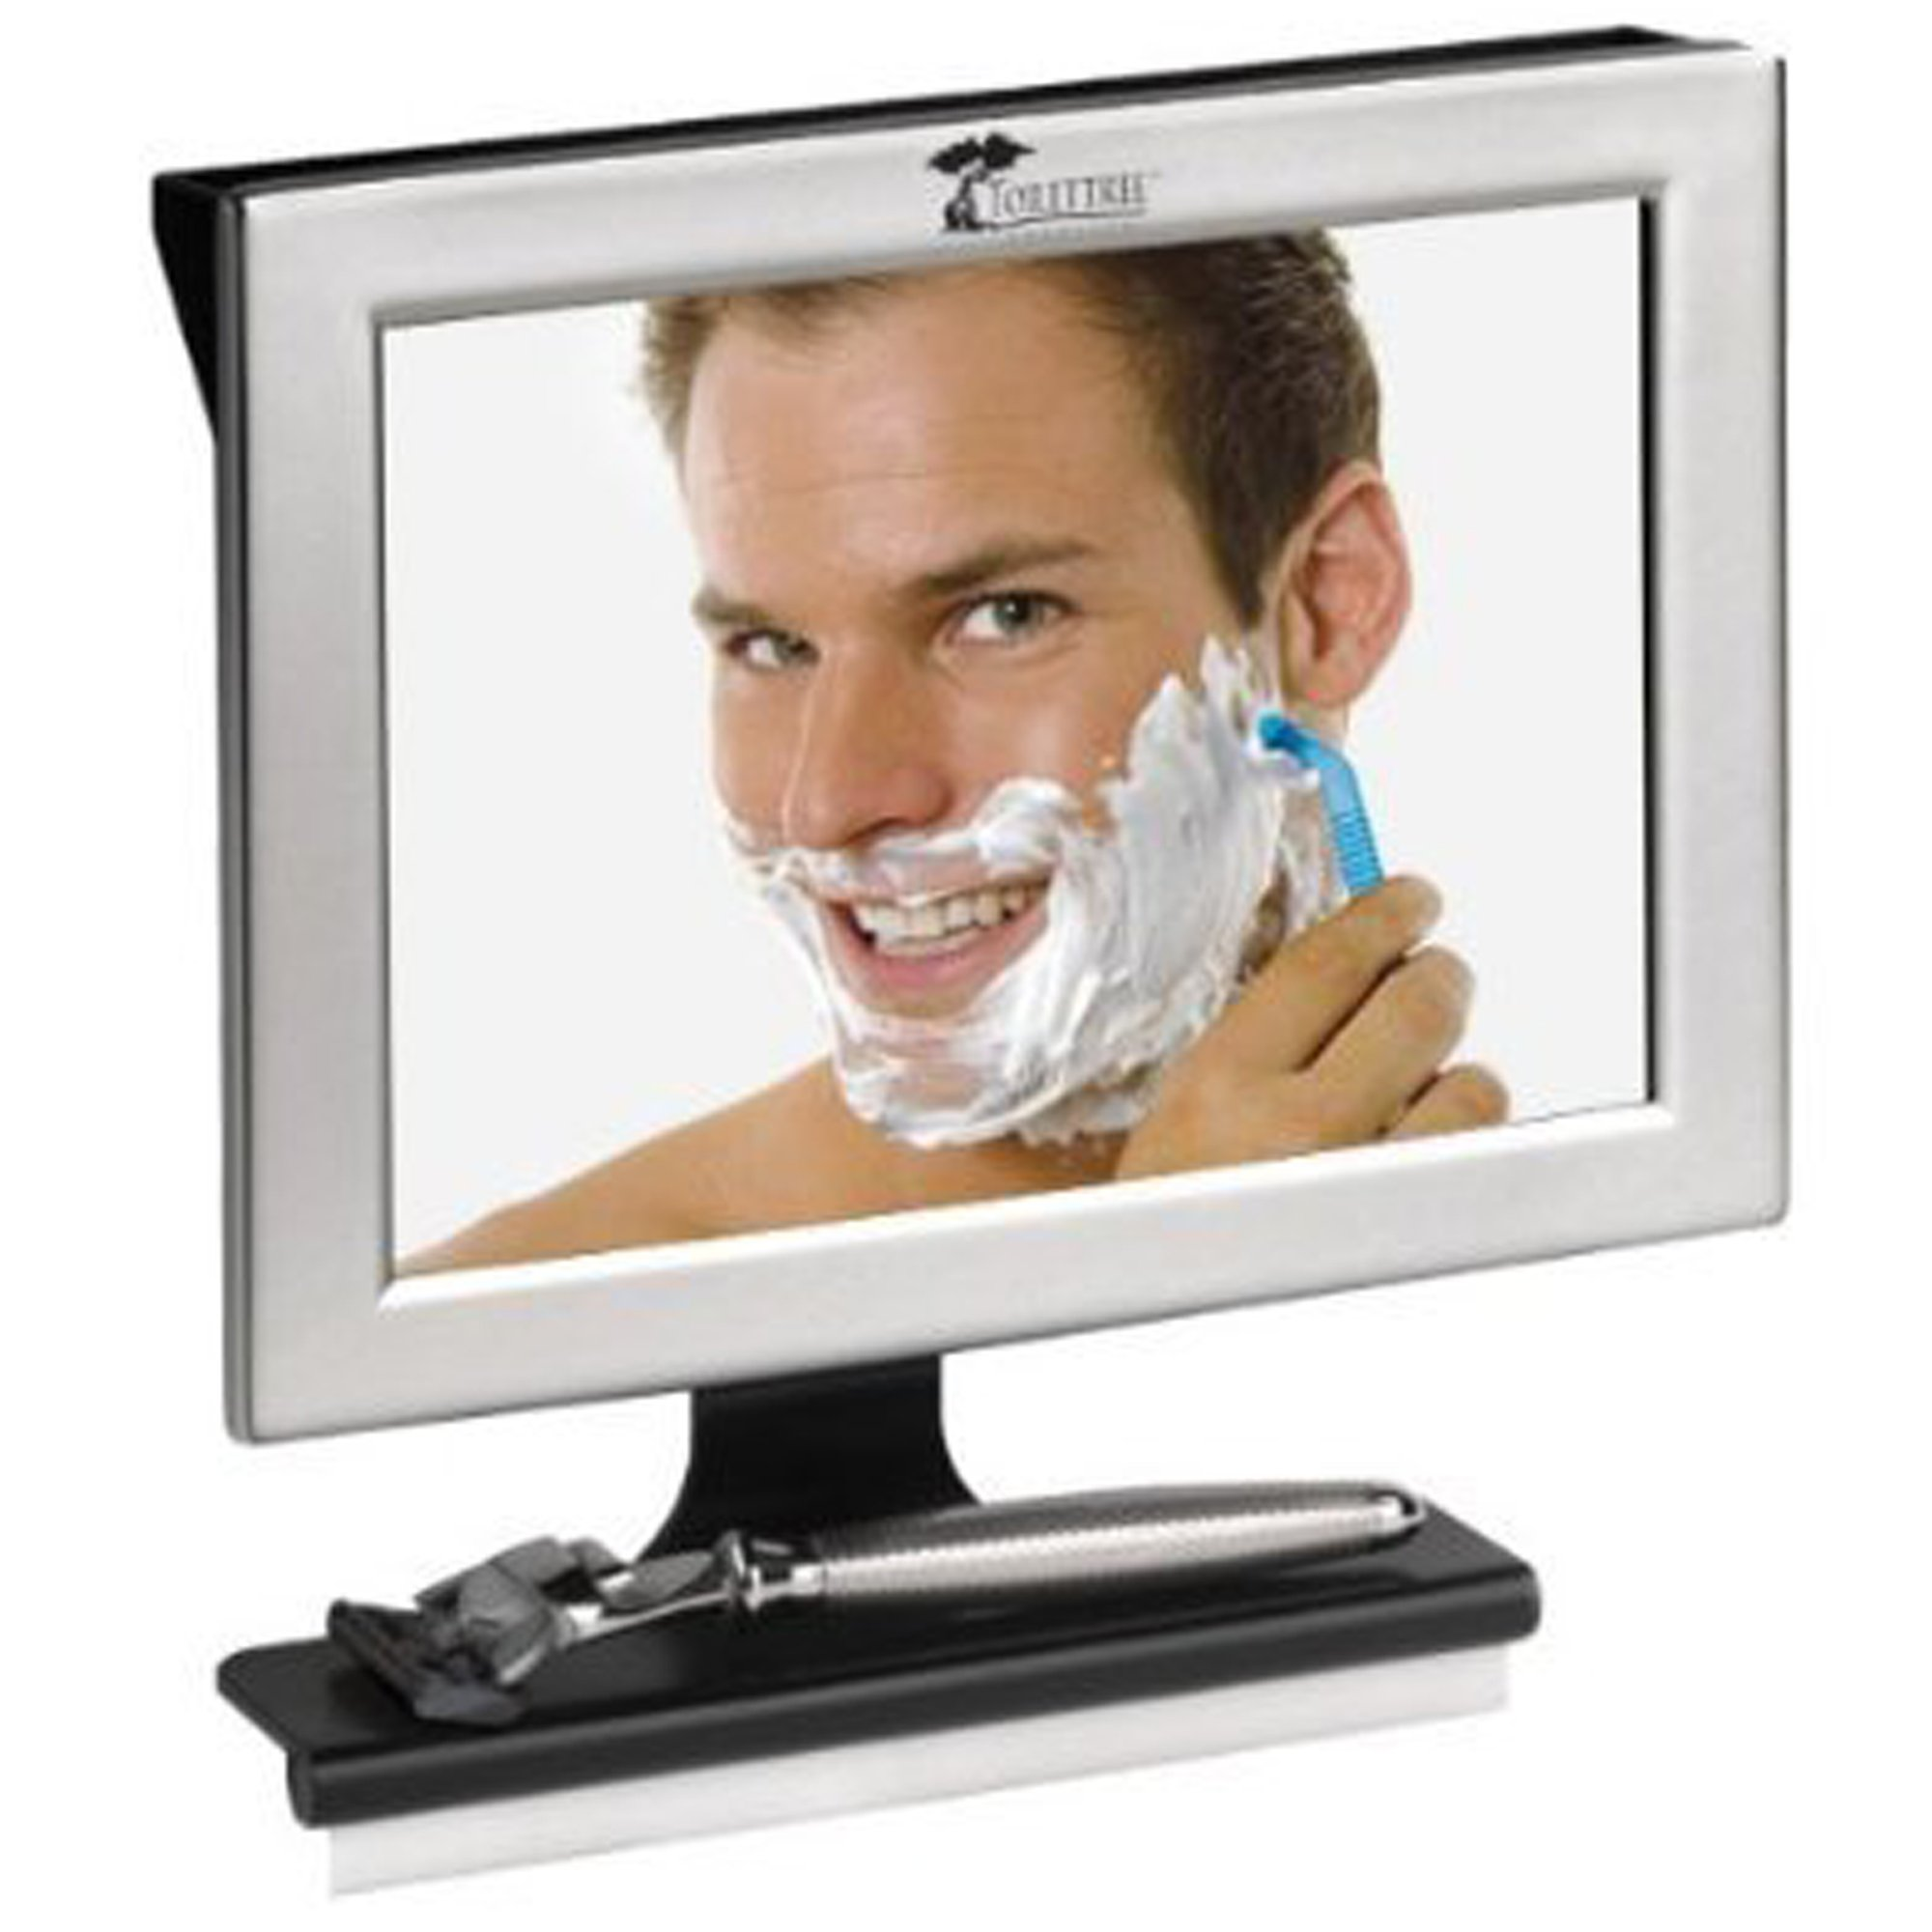 ToiletTree Products Fogless Shower Bathroom Mirror with Squeegee, Silver by ToiletTree Products